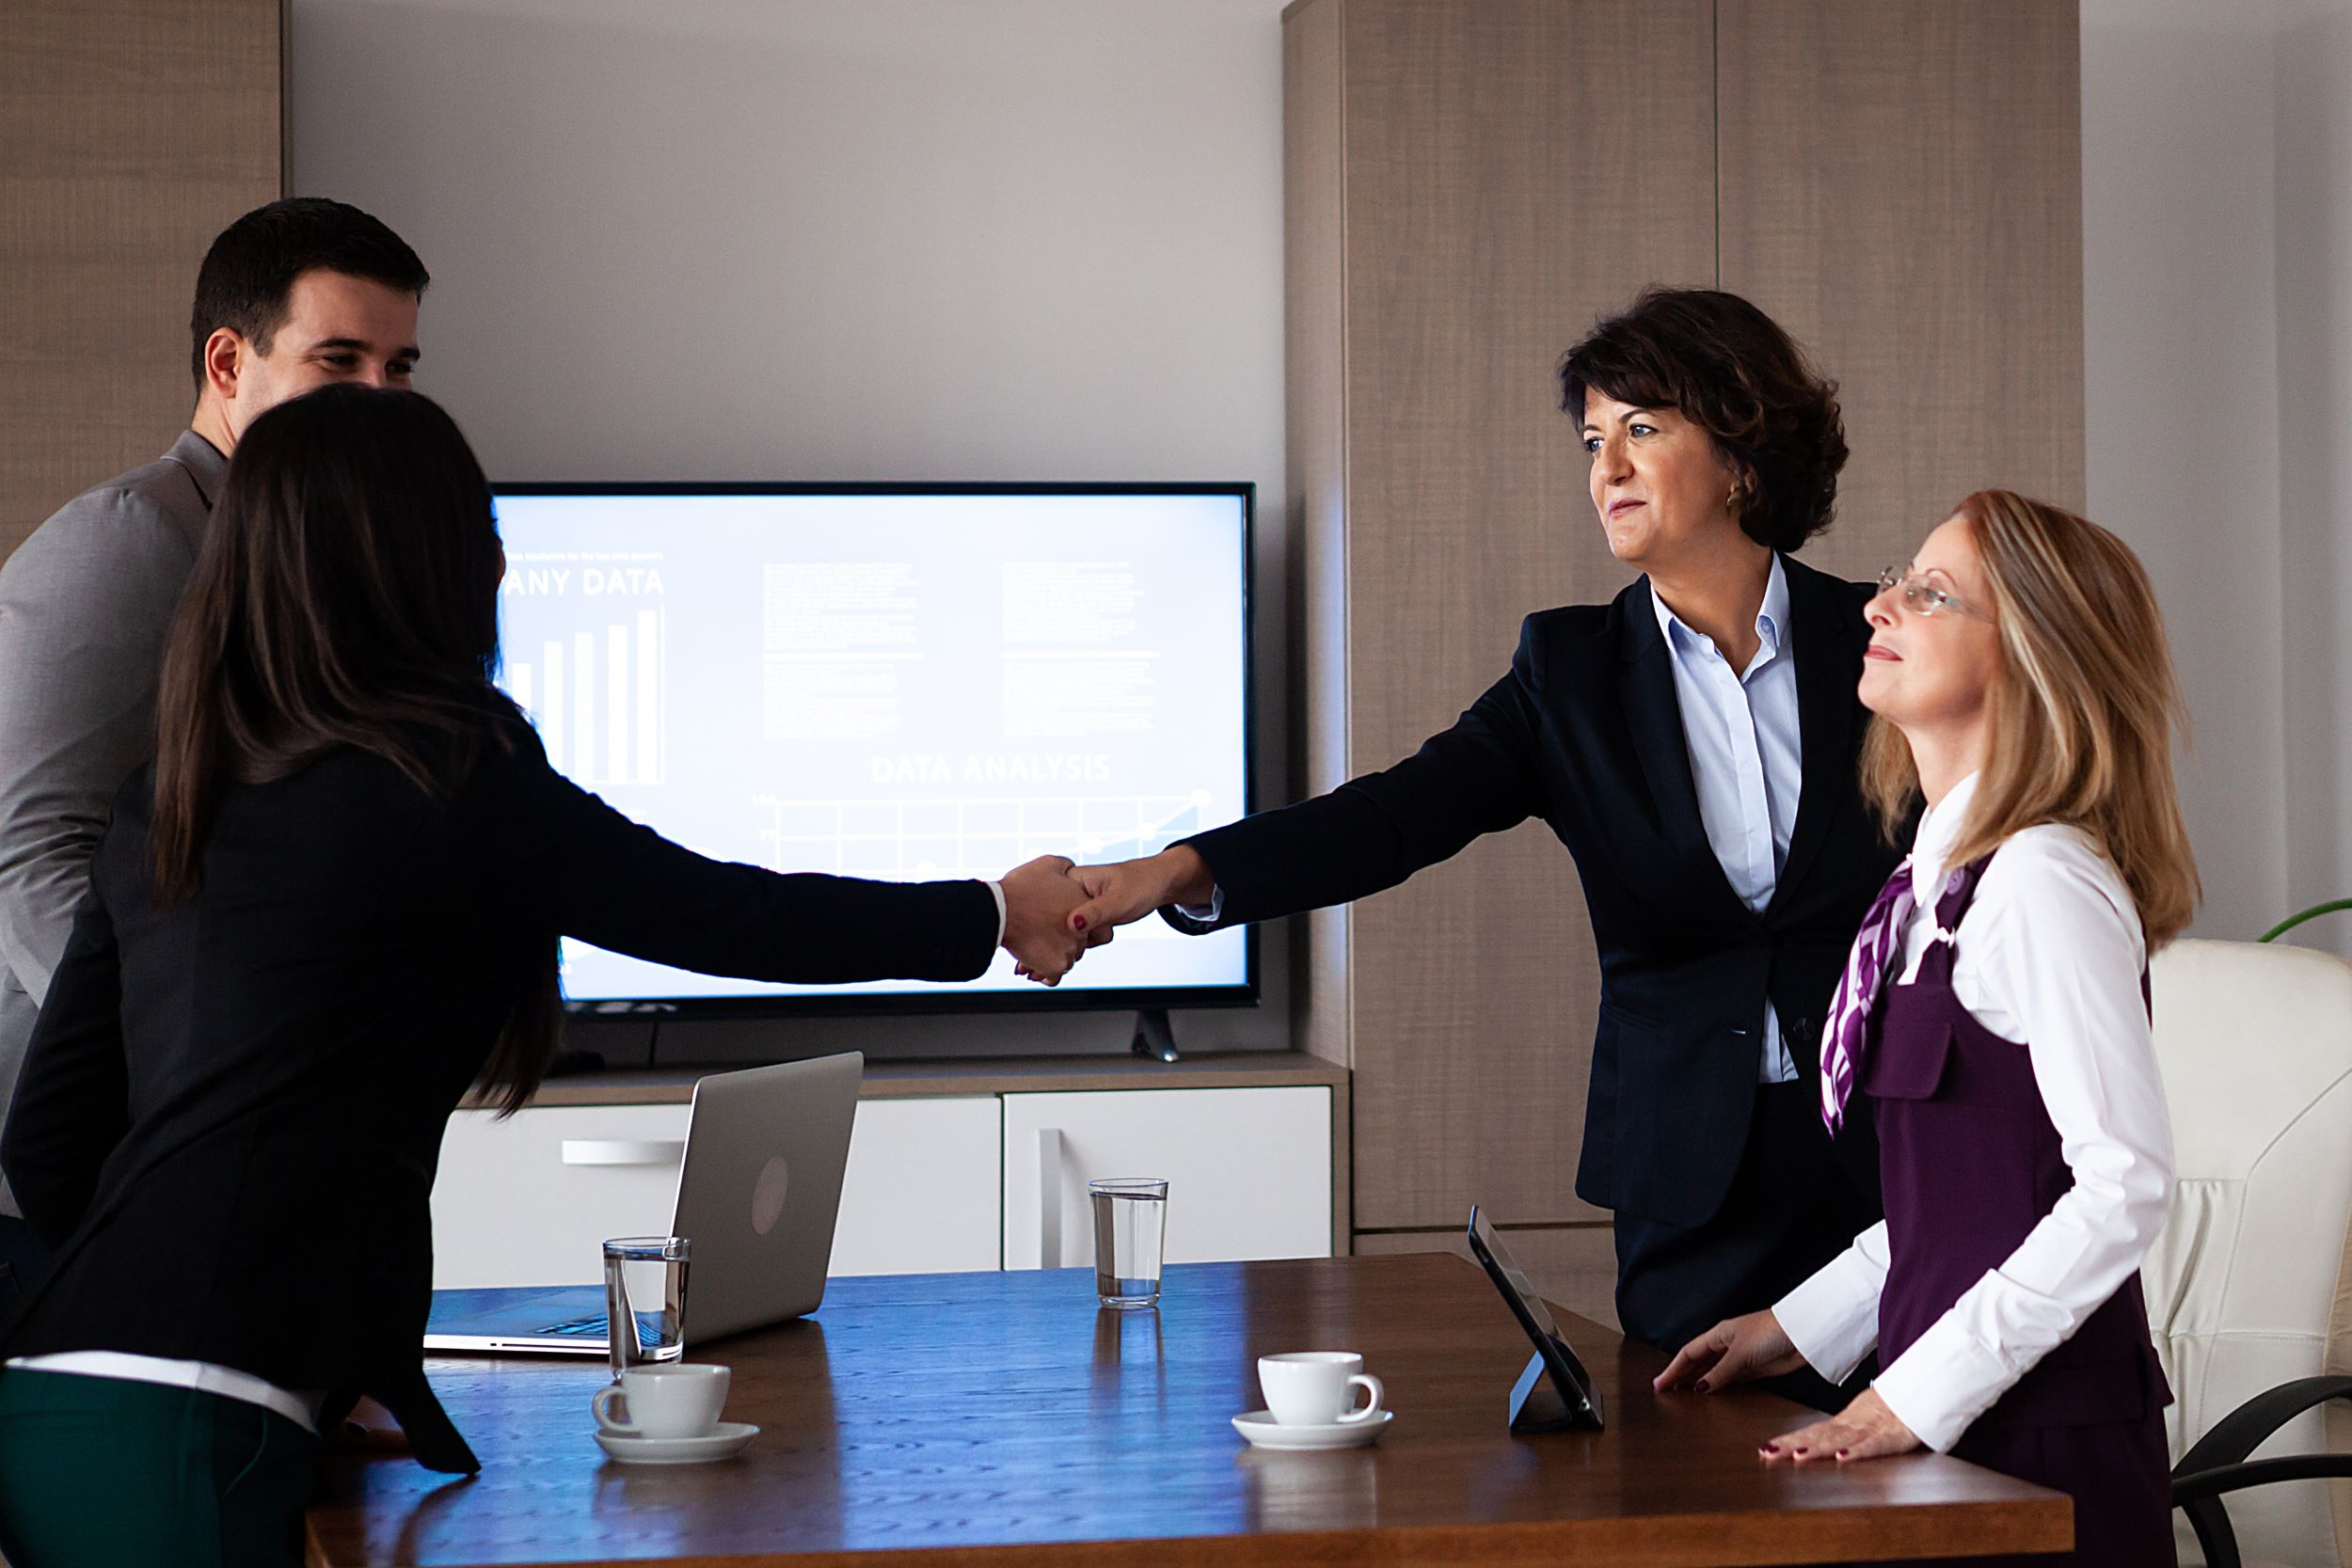 a few executives pictured shaking hands in a boardroom meeting